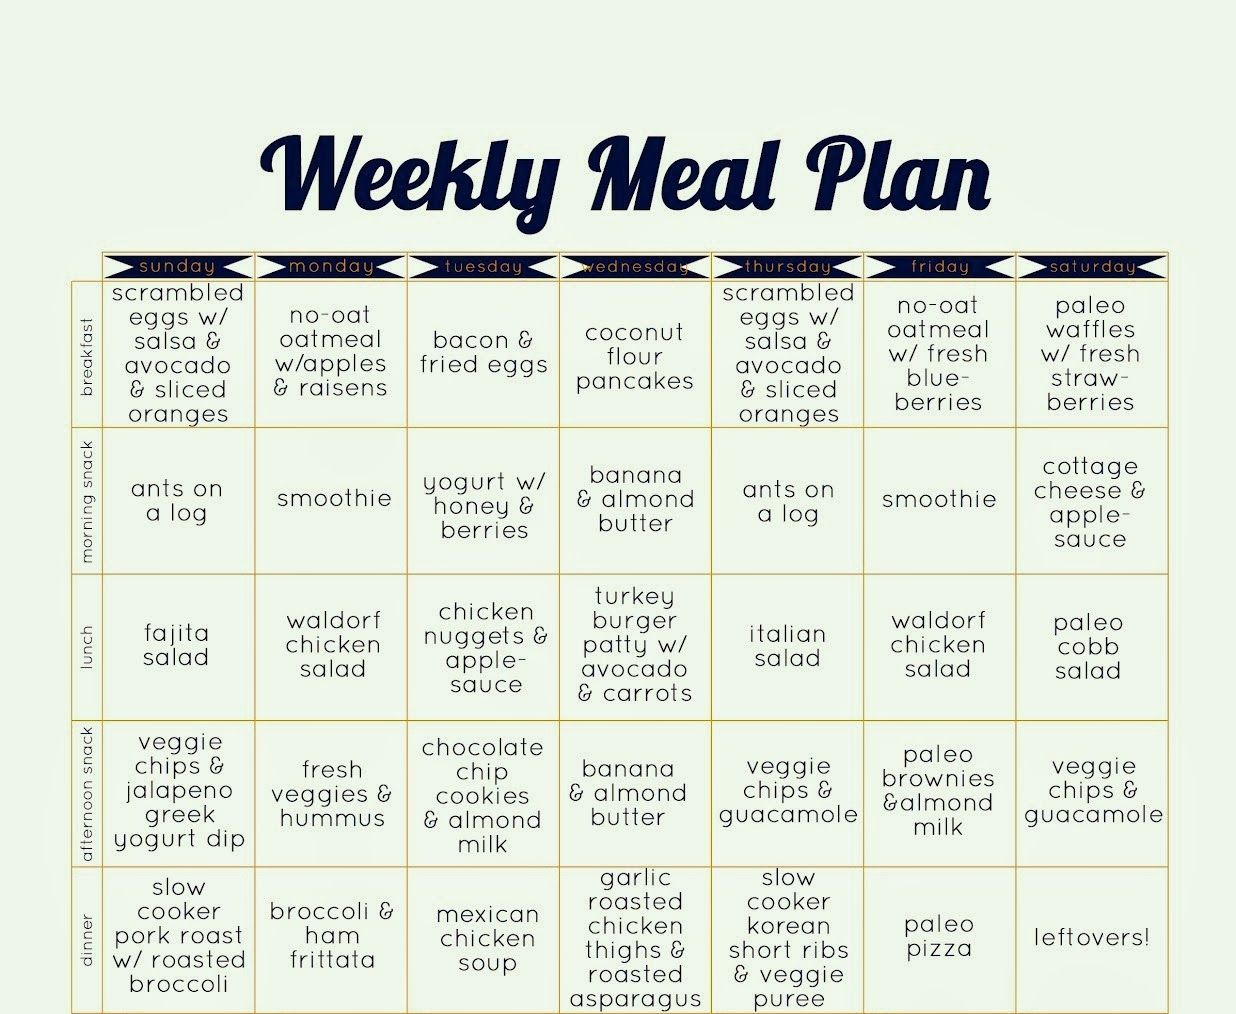 Paleot Meal Plan